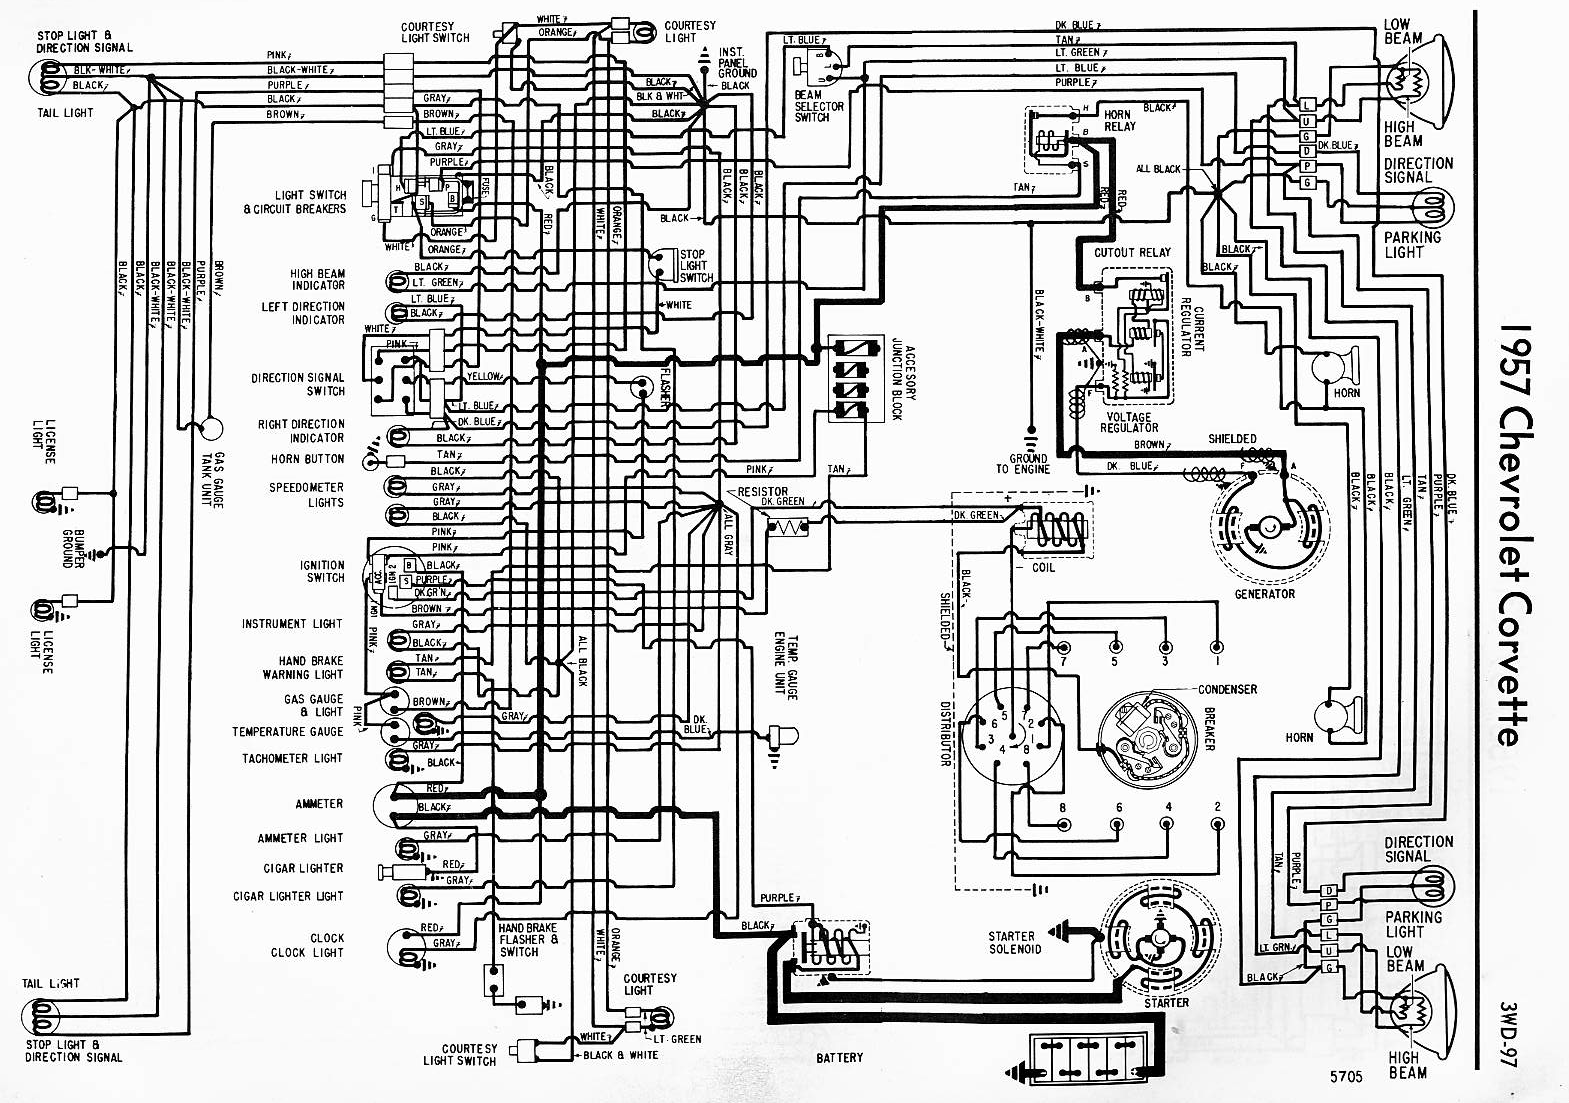 1957 corvette wiring diagram willcox corvette inc rh repairs willcoxcorvette com 1993 Corvette AC Wiring Diagrams 68 Corvette Dash Wiring Diagram